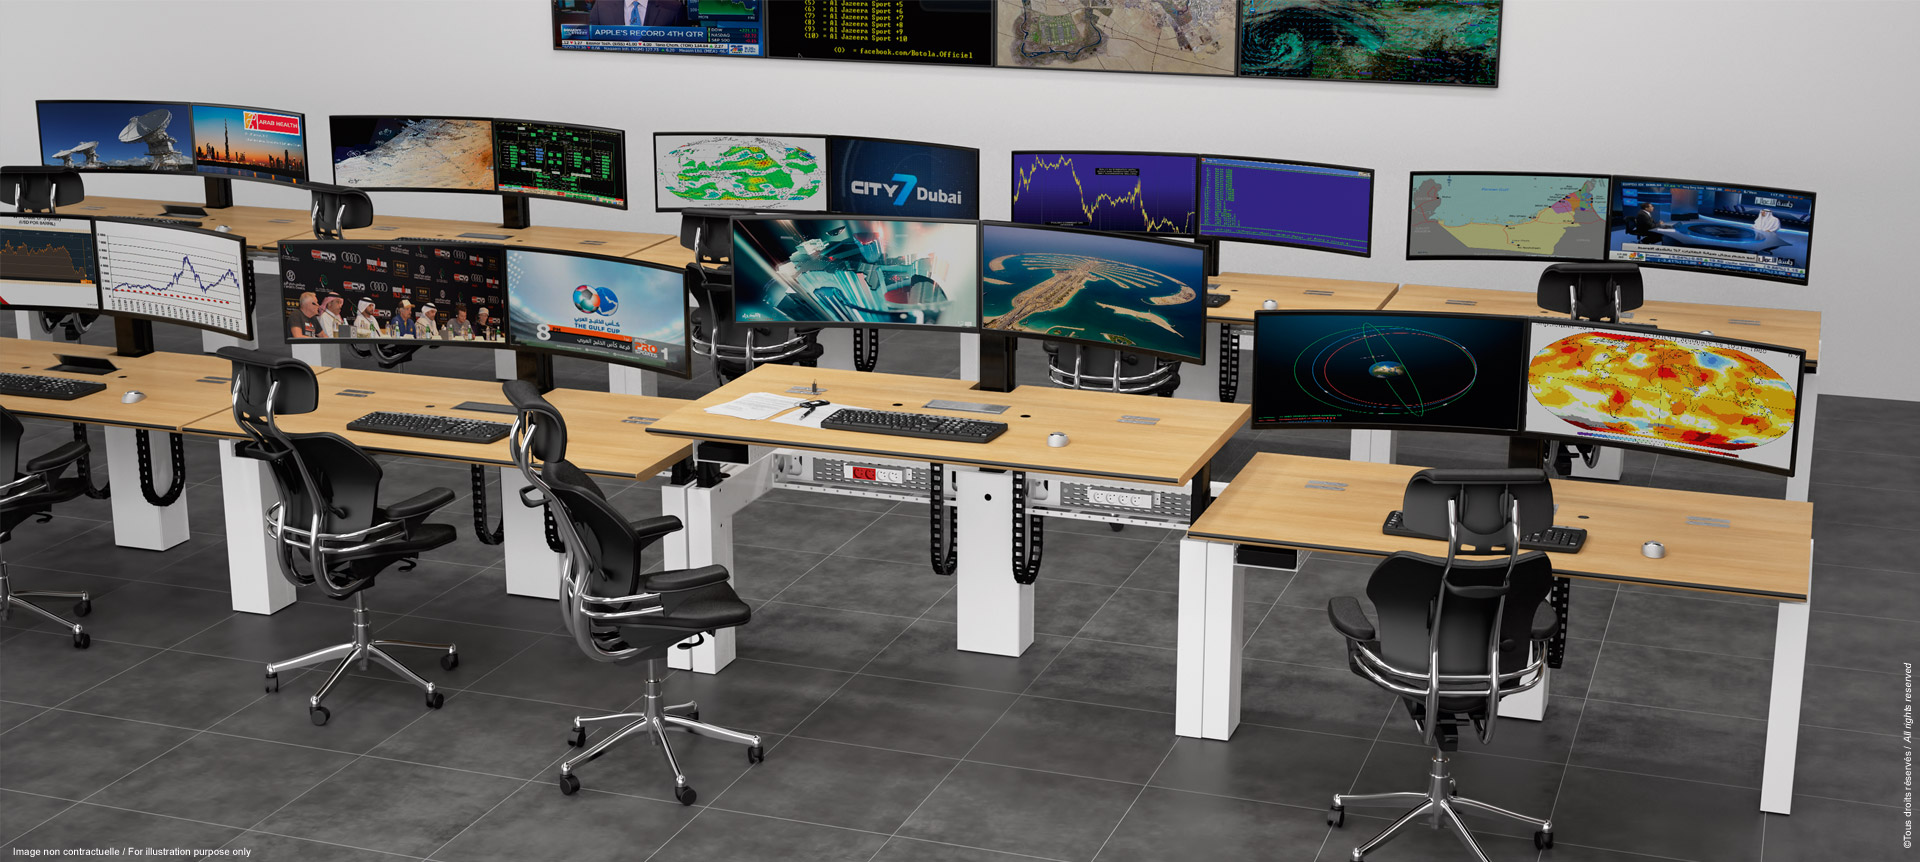 Multiscreen and ergonomic workstation for cyber room